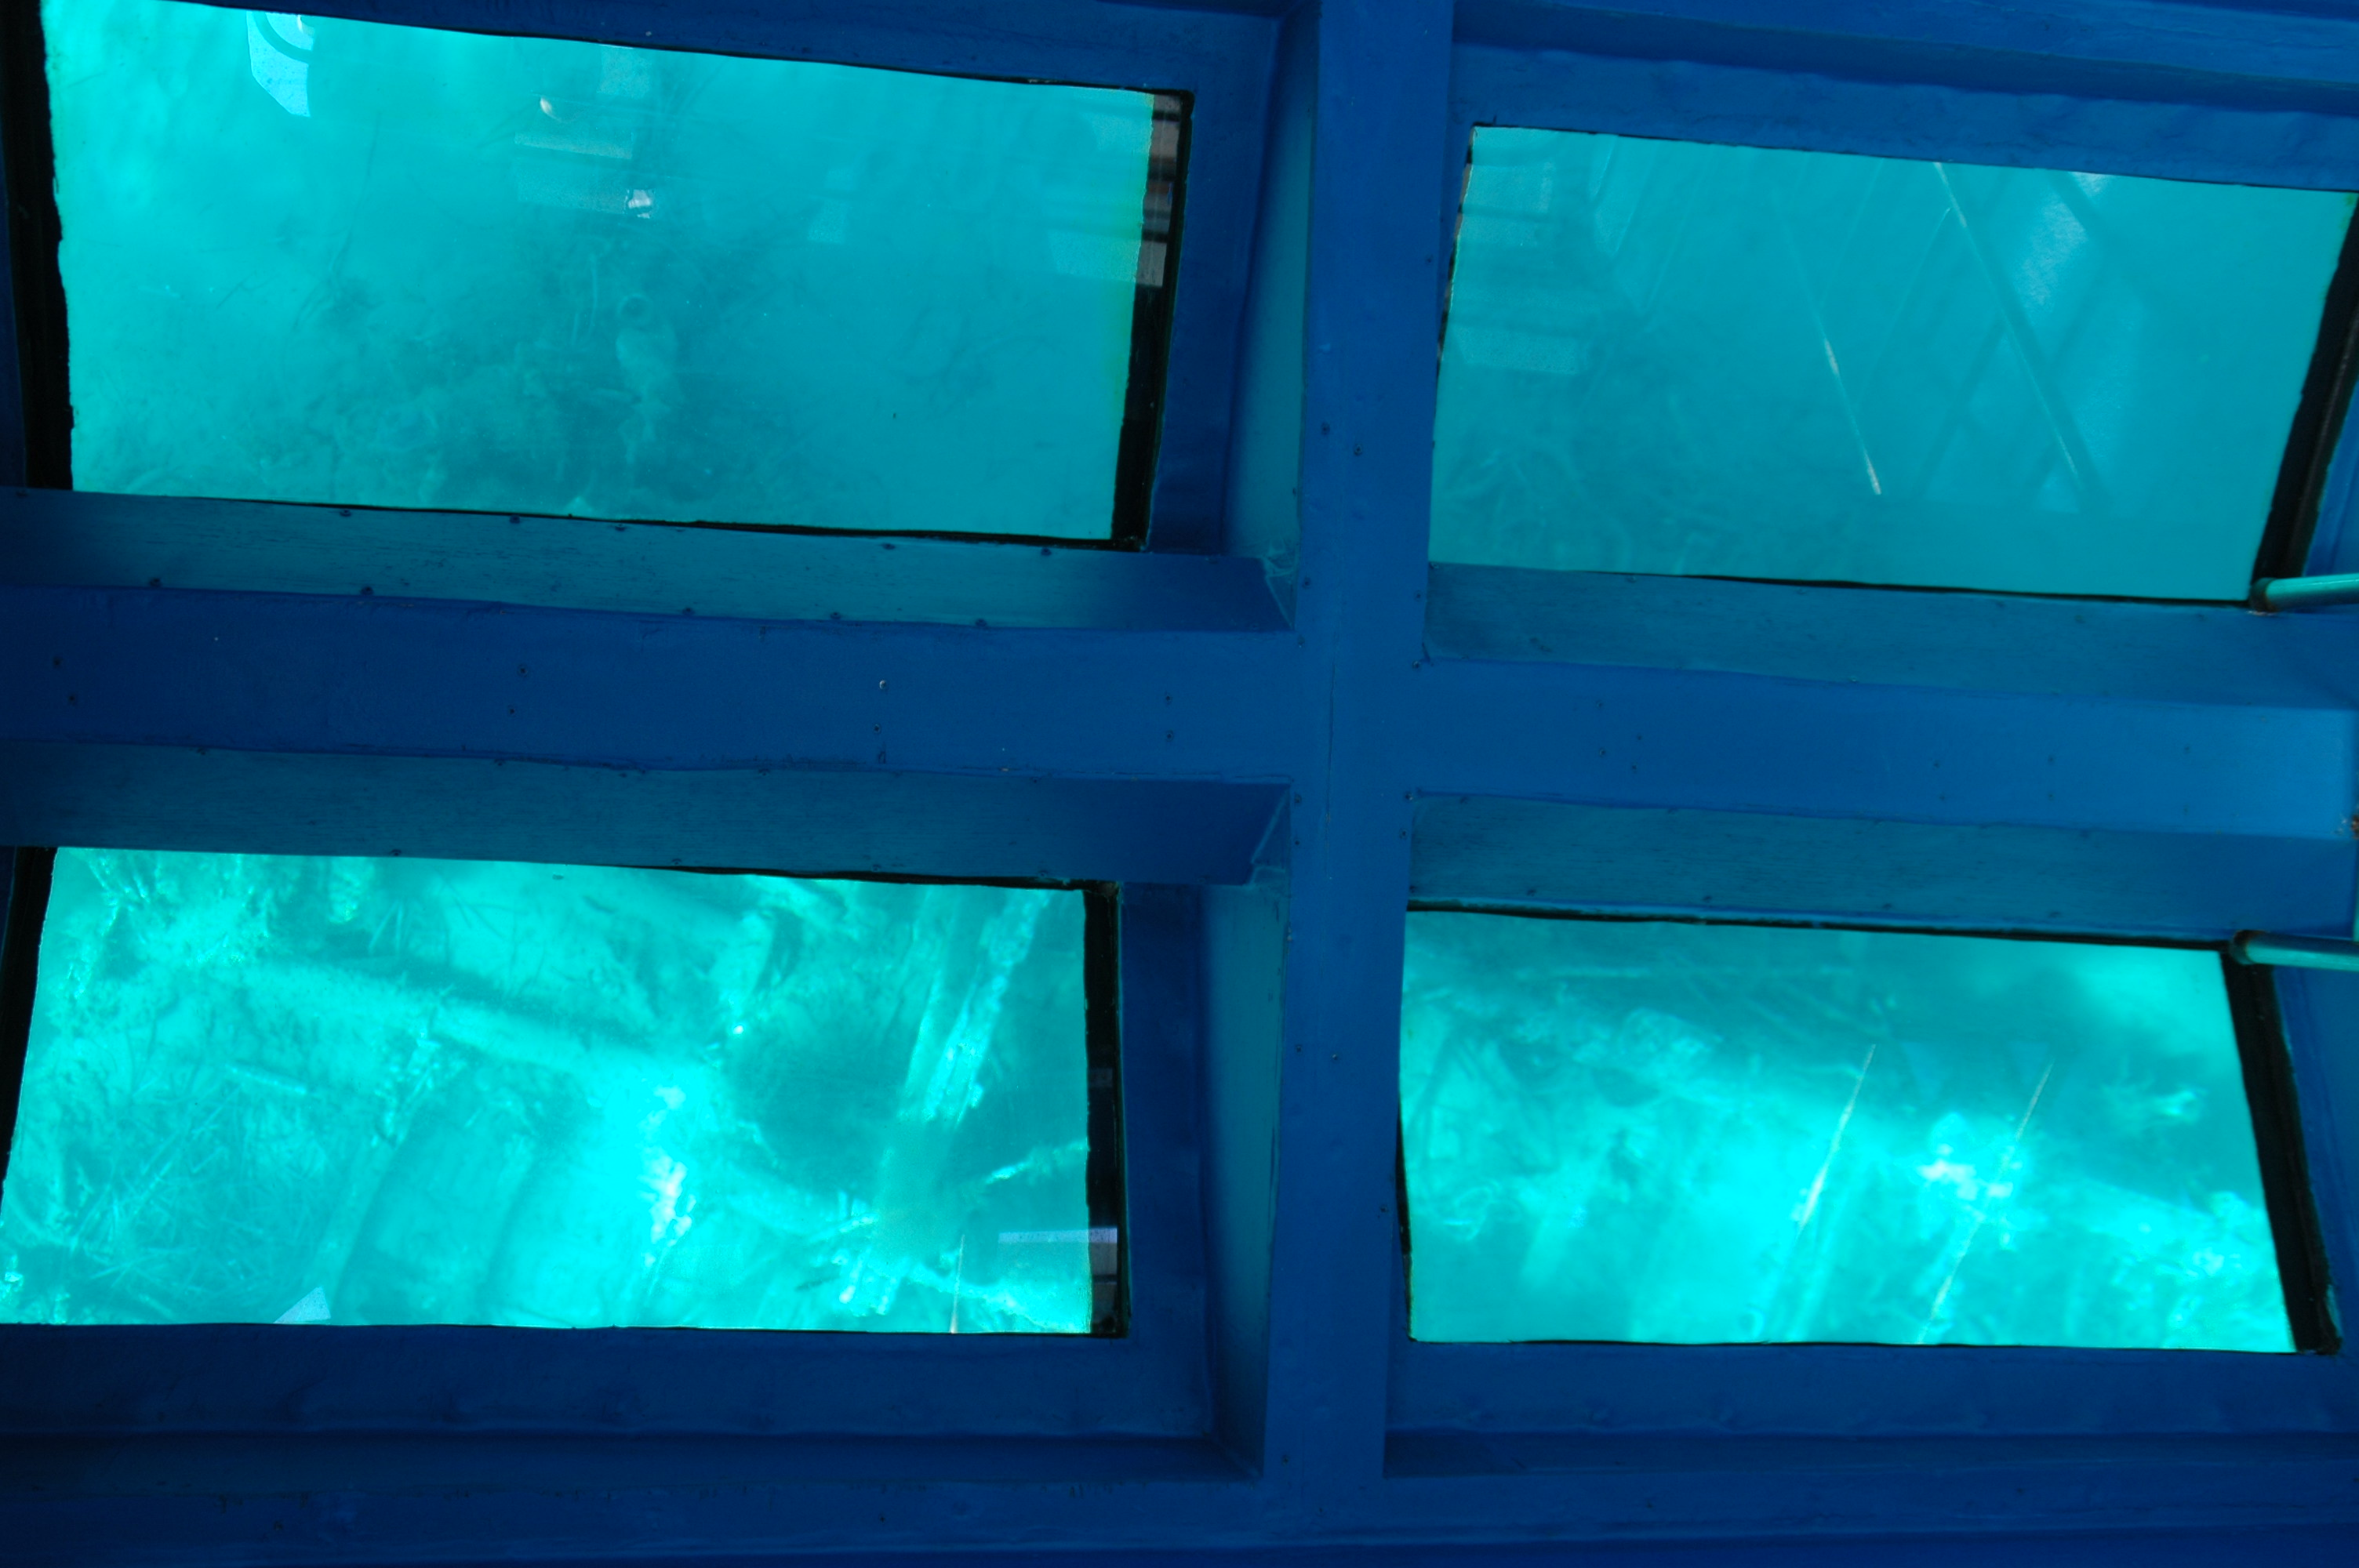 Windows showing view of underwater